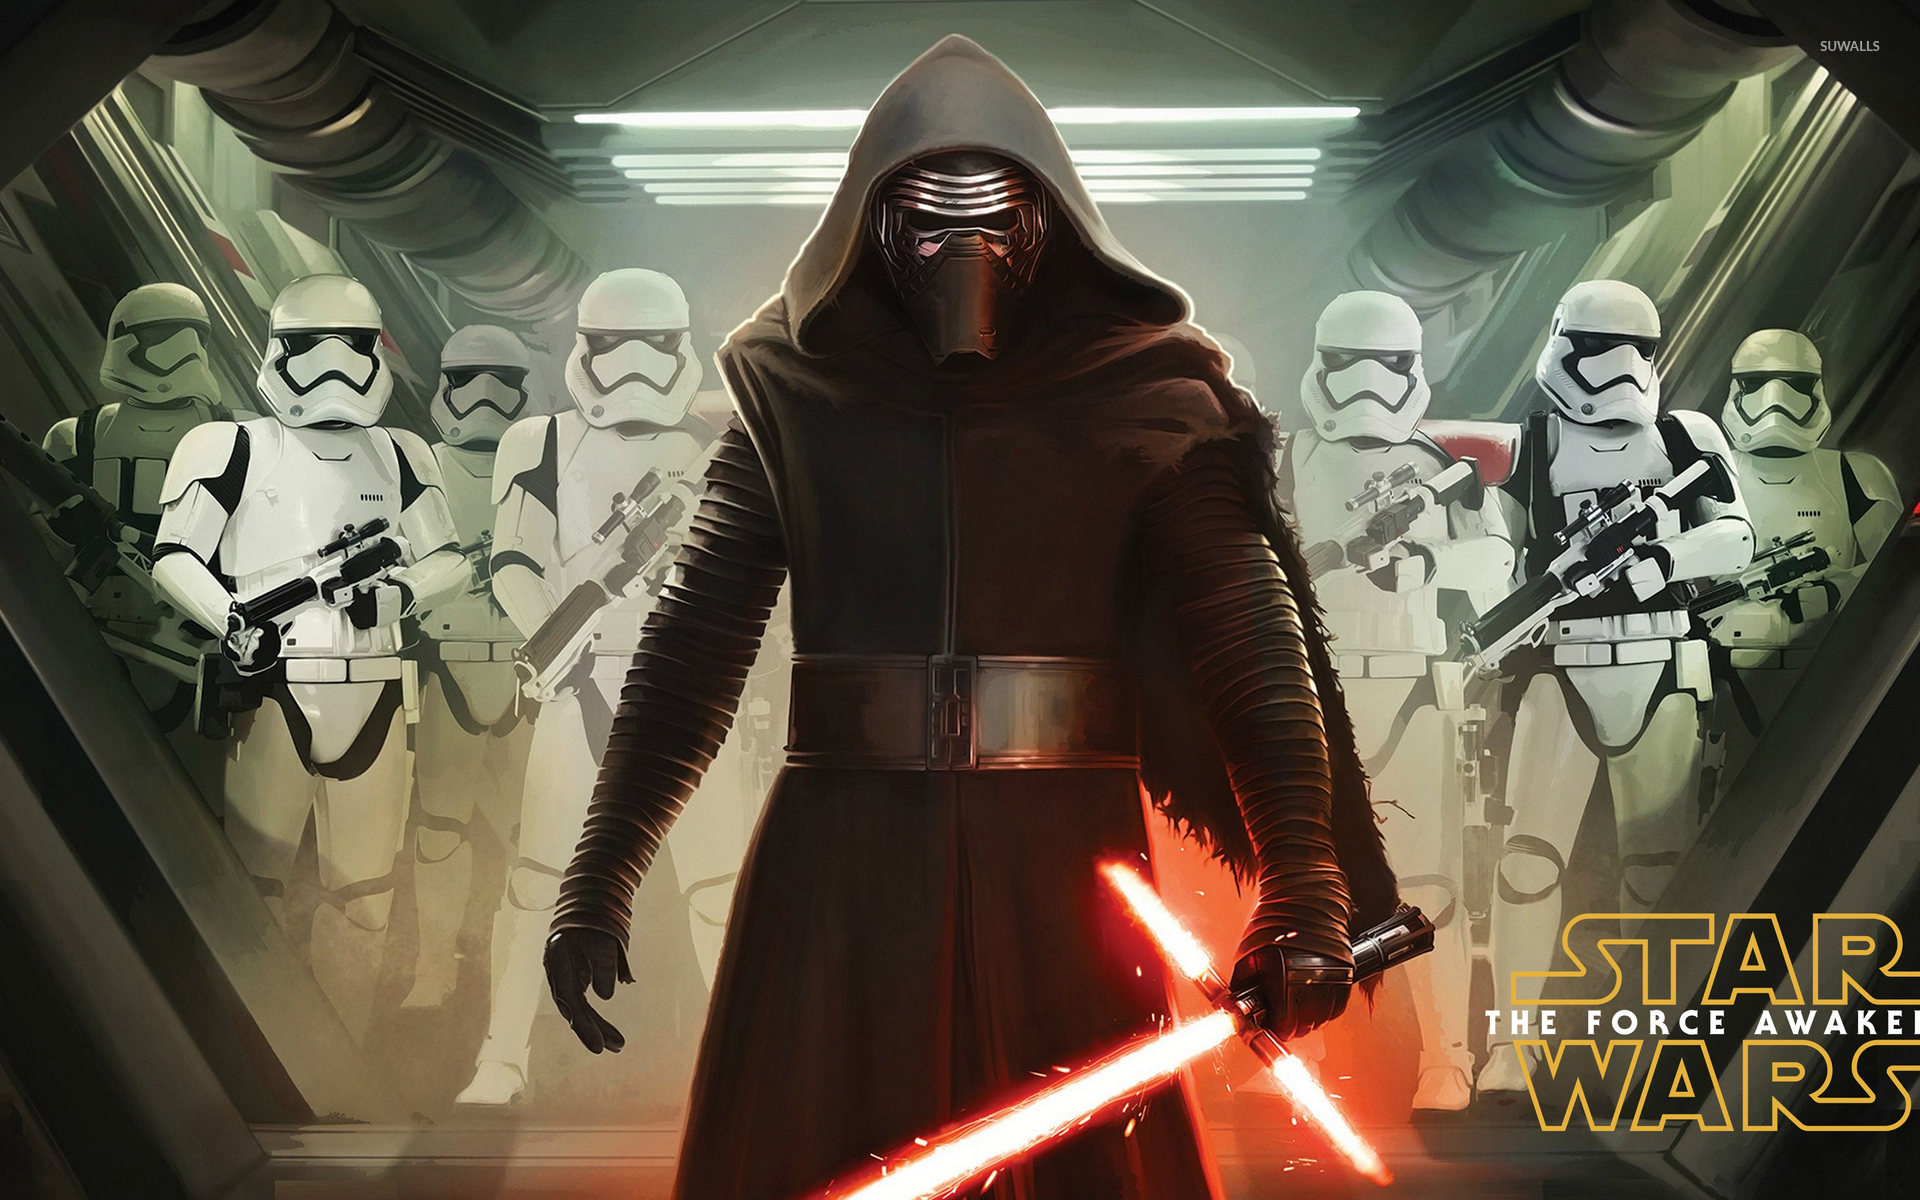 Kylo Ren with stormtroopers   Star Wars The Force Awakens wallpaper 1920x1200